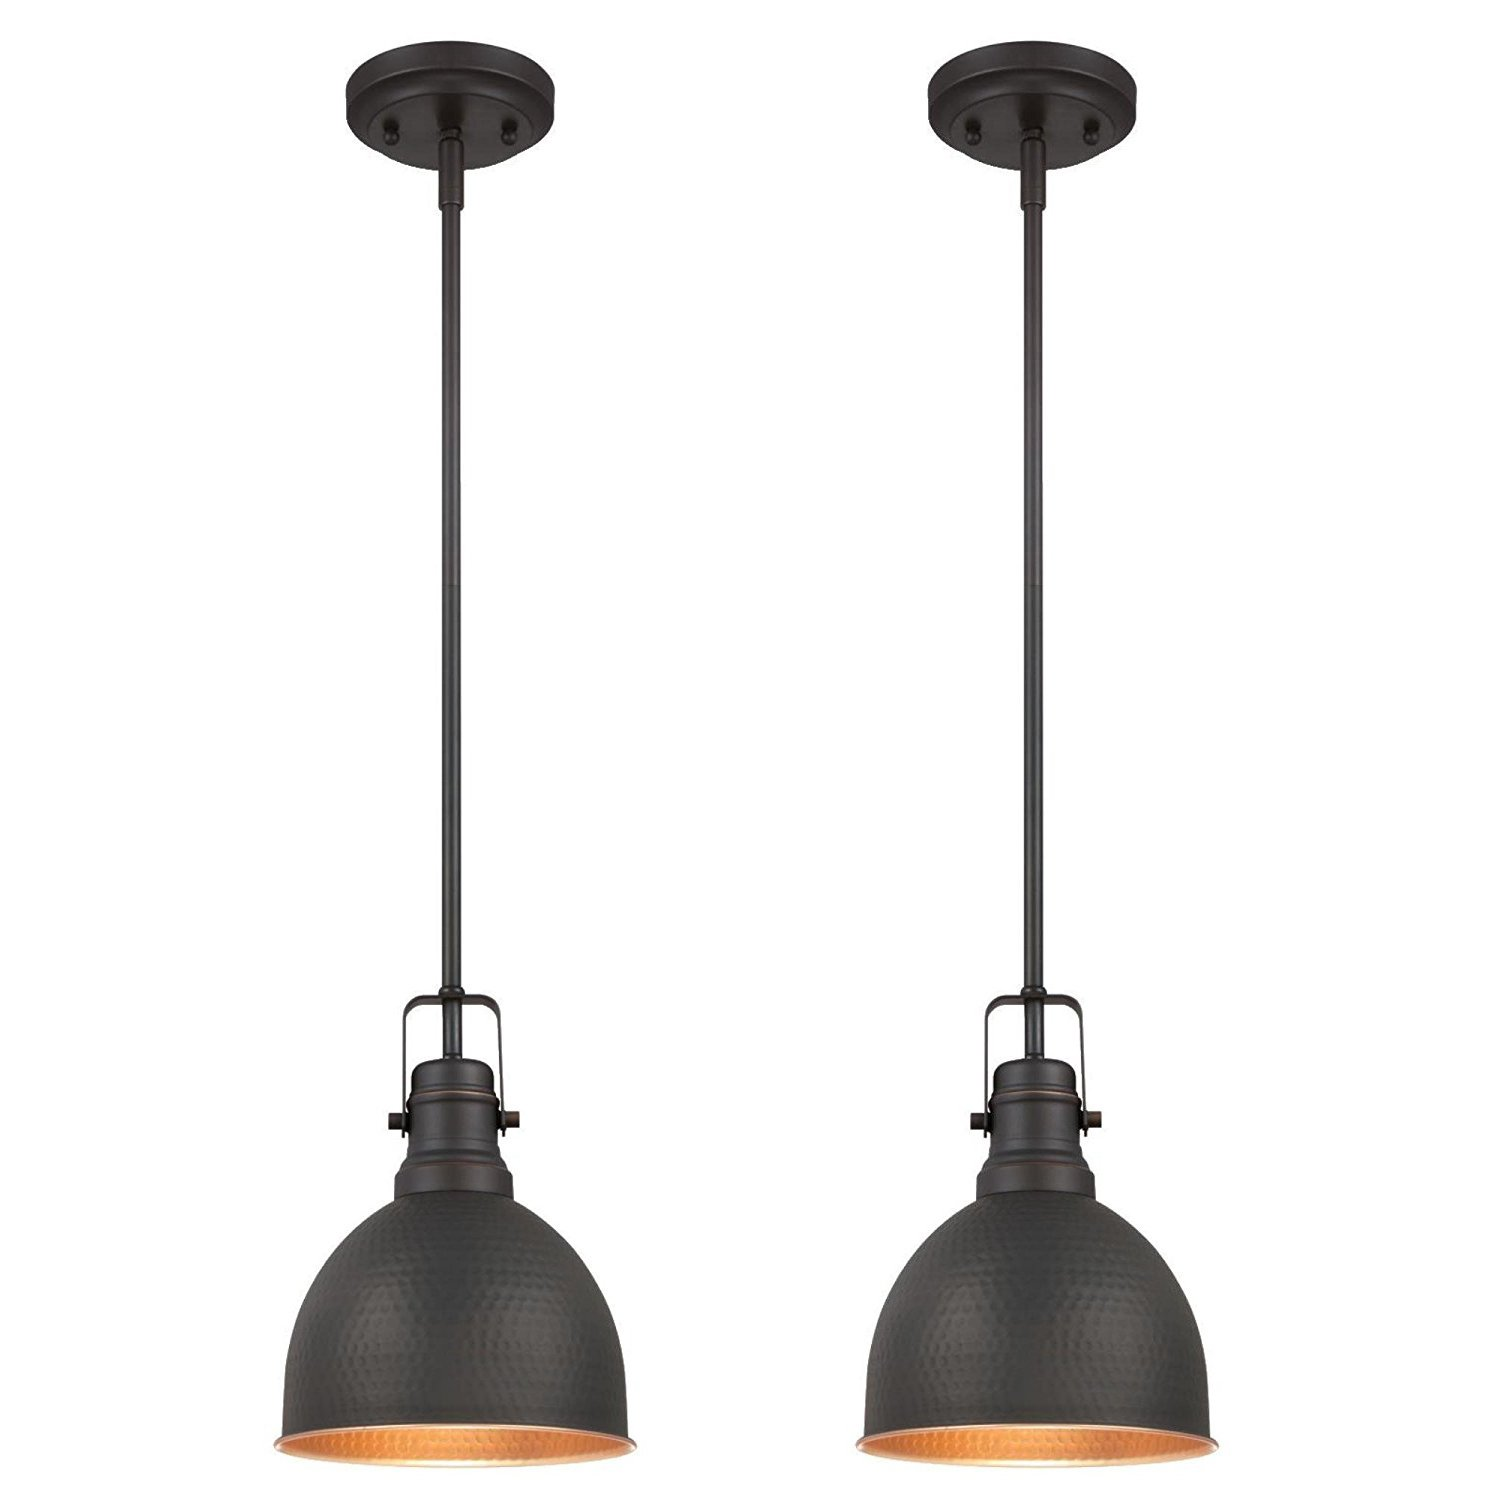 Westinghouse 6345600 One-Light Mini Pendant Industrial Hammered Oil Rubbed Bronze Finish with Highlights (2 Pack) Piece